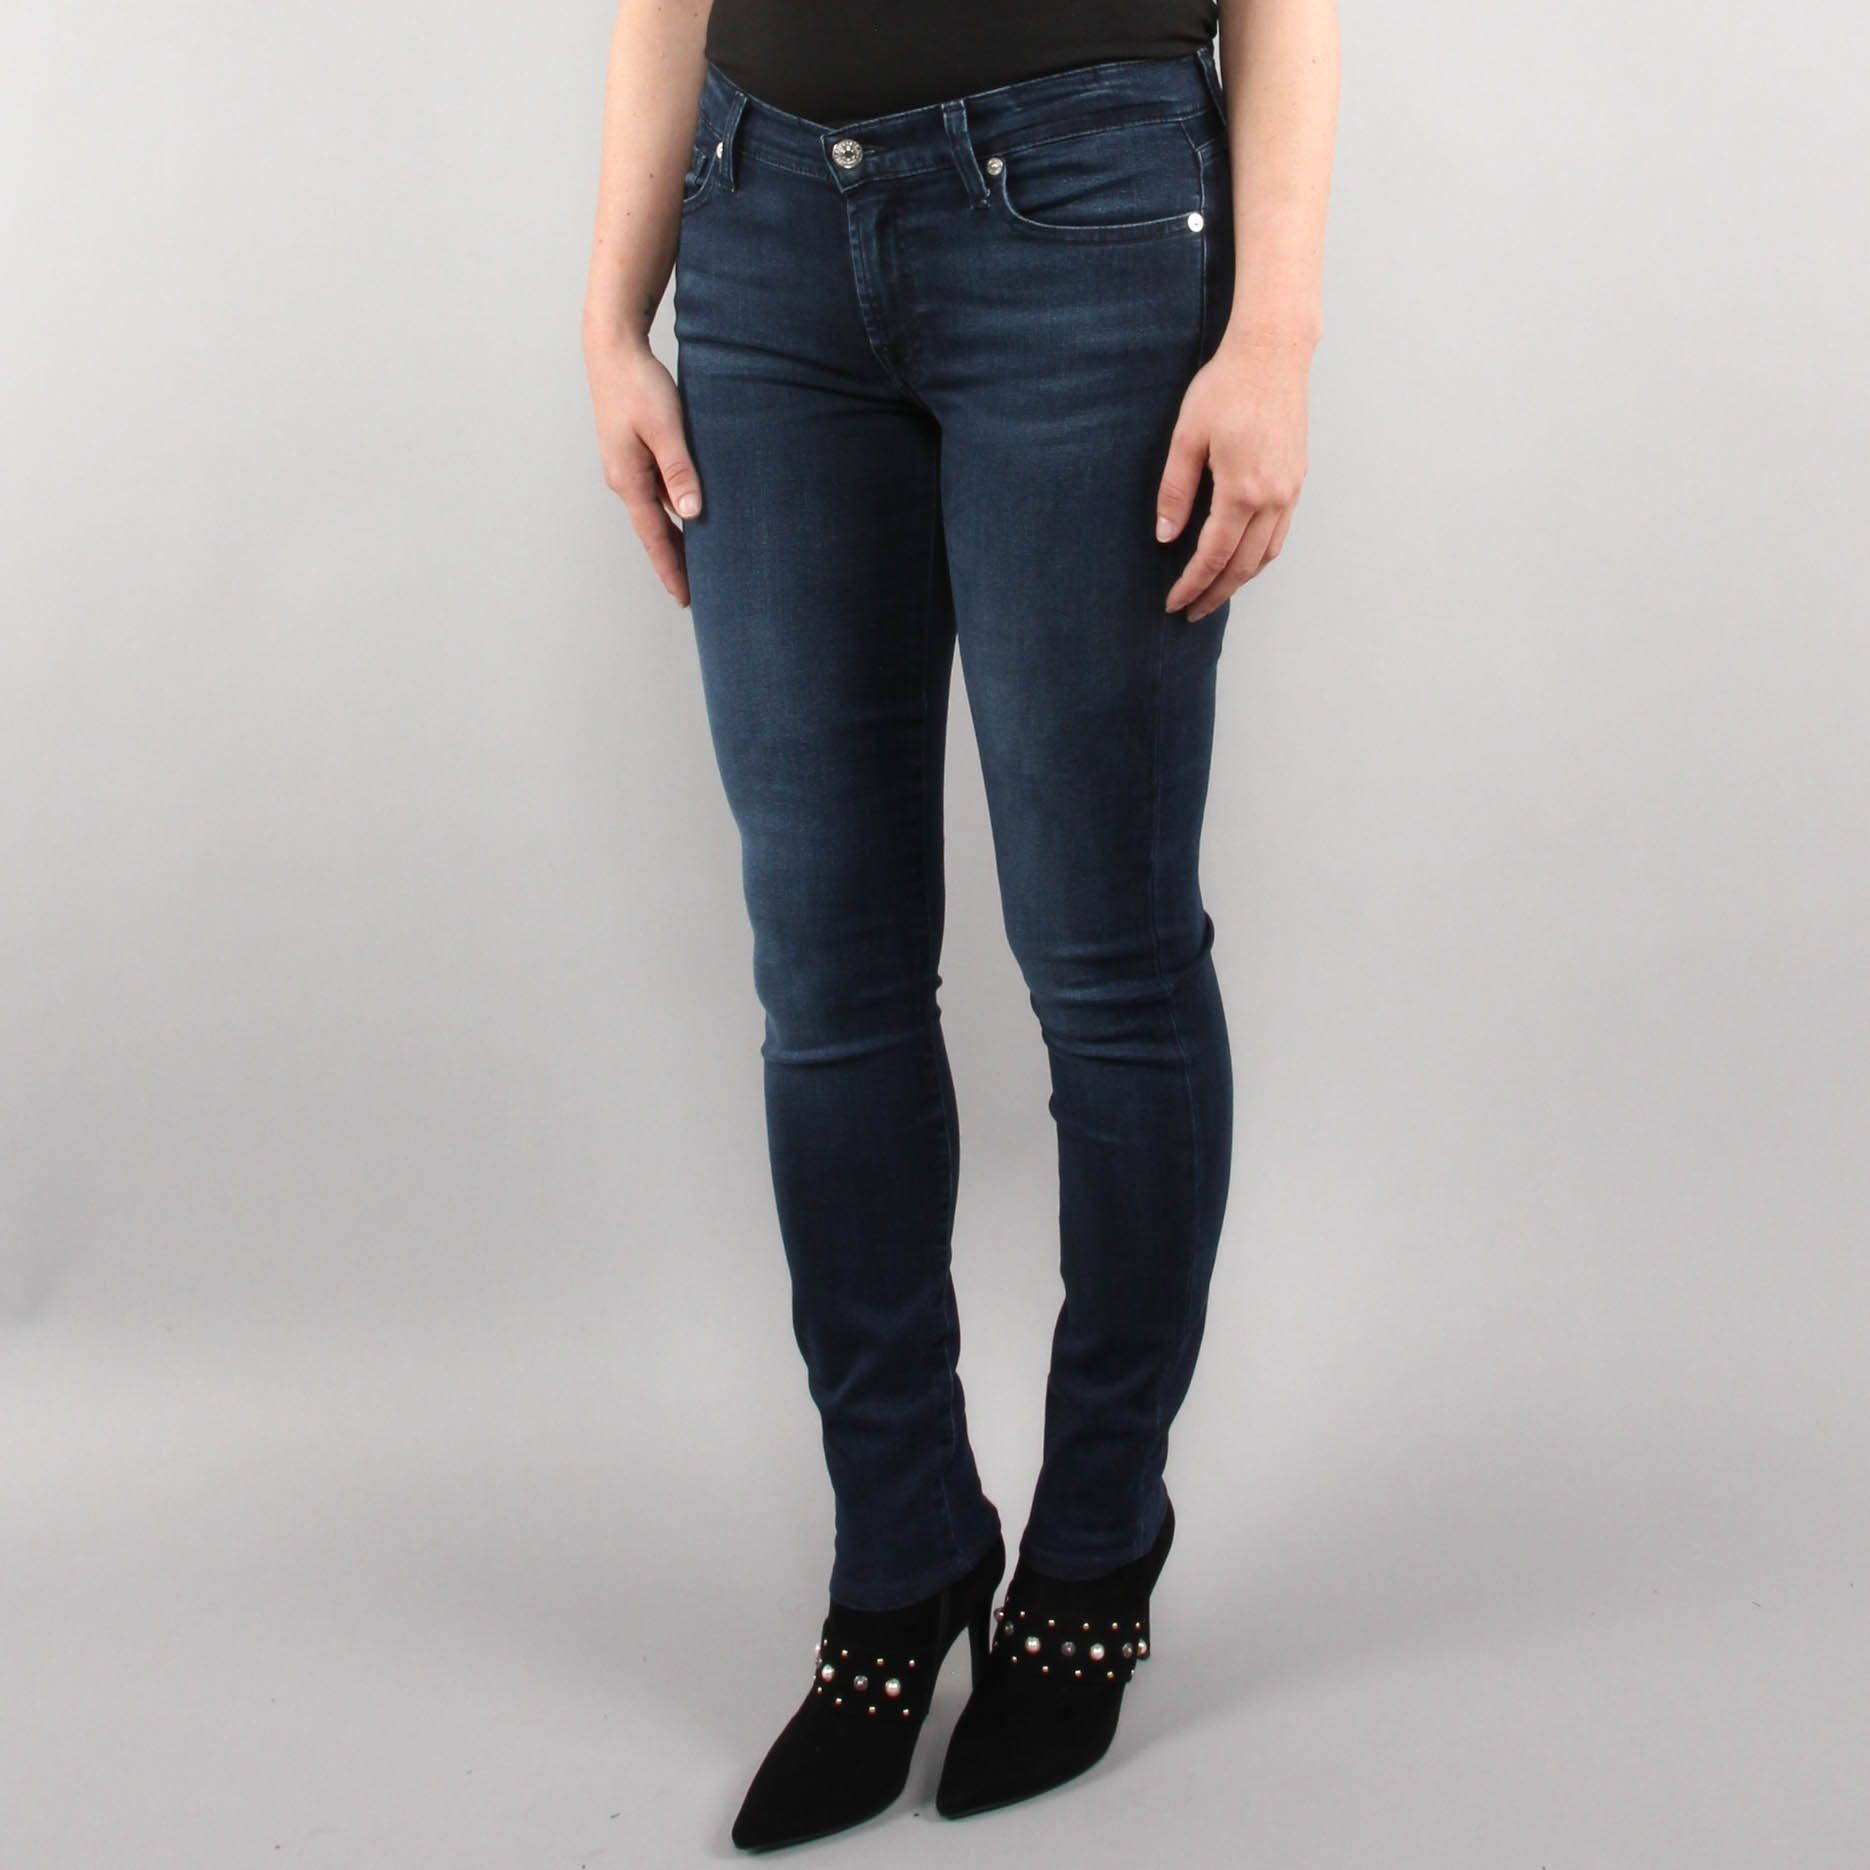 Afbeelding van 7 For All Mankind The skinny bair park avenue blauw